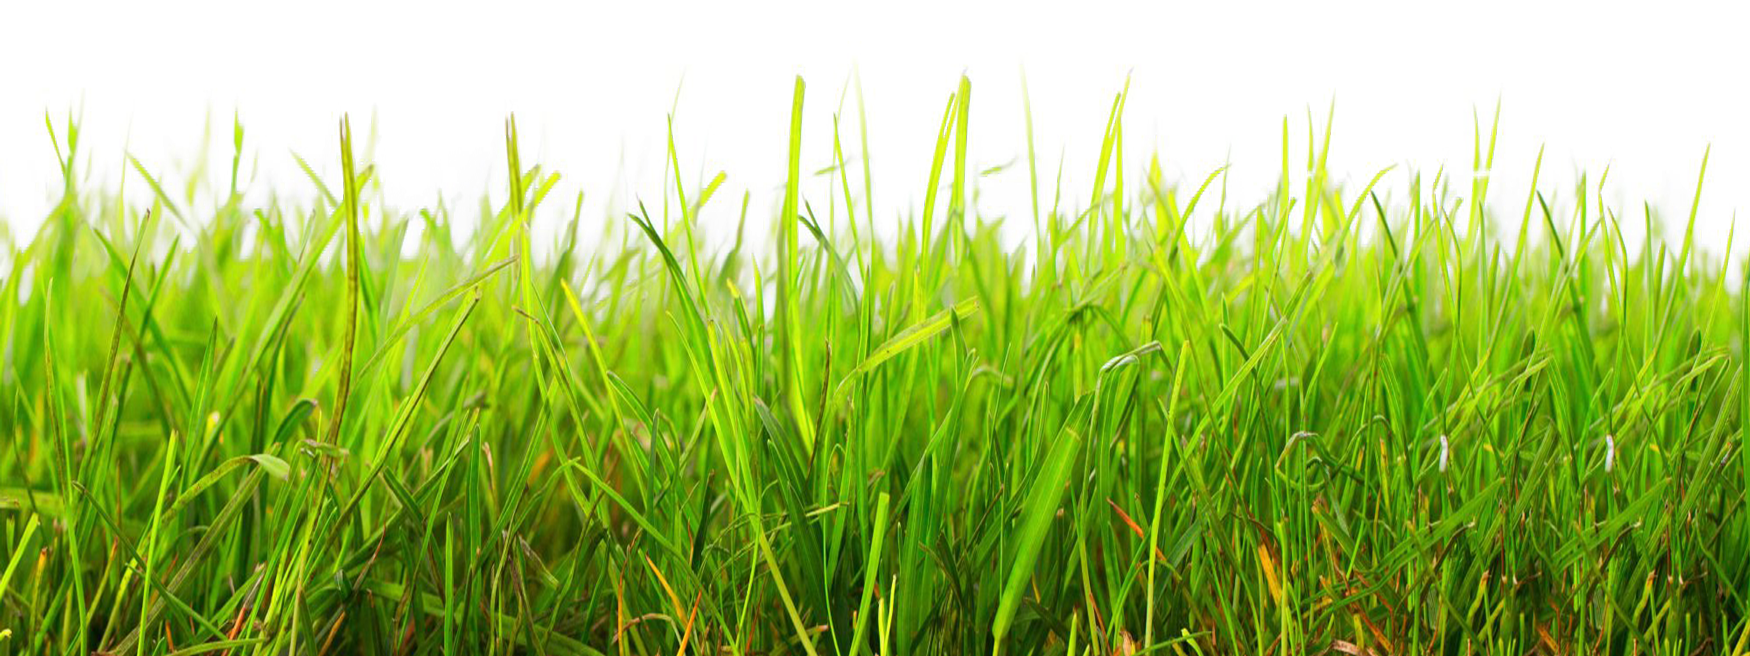 PNG GRASS by Moonglowlilly Pl